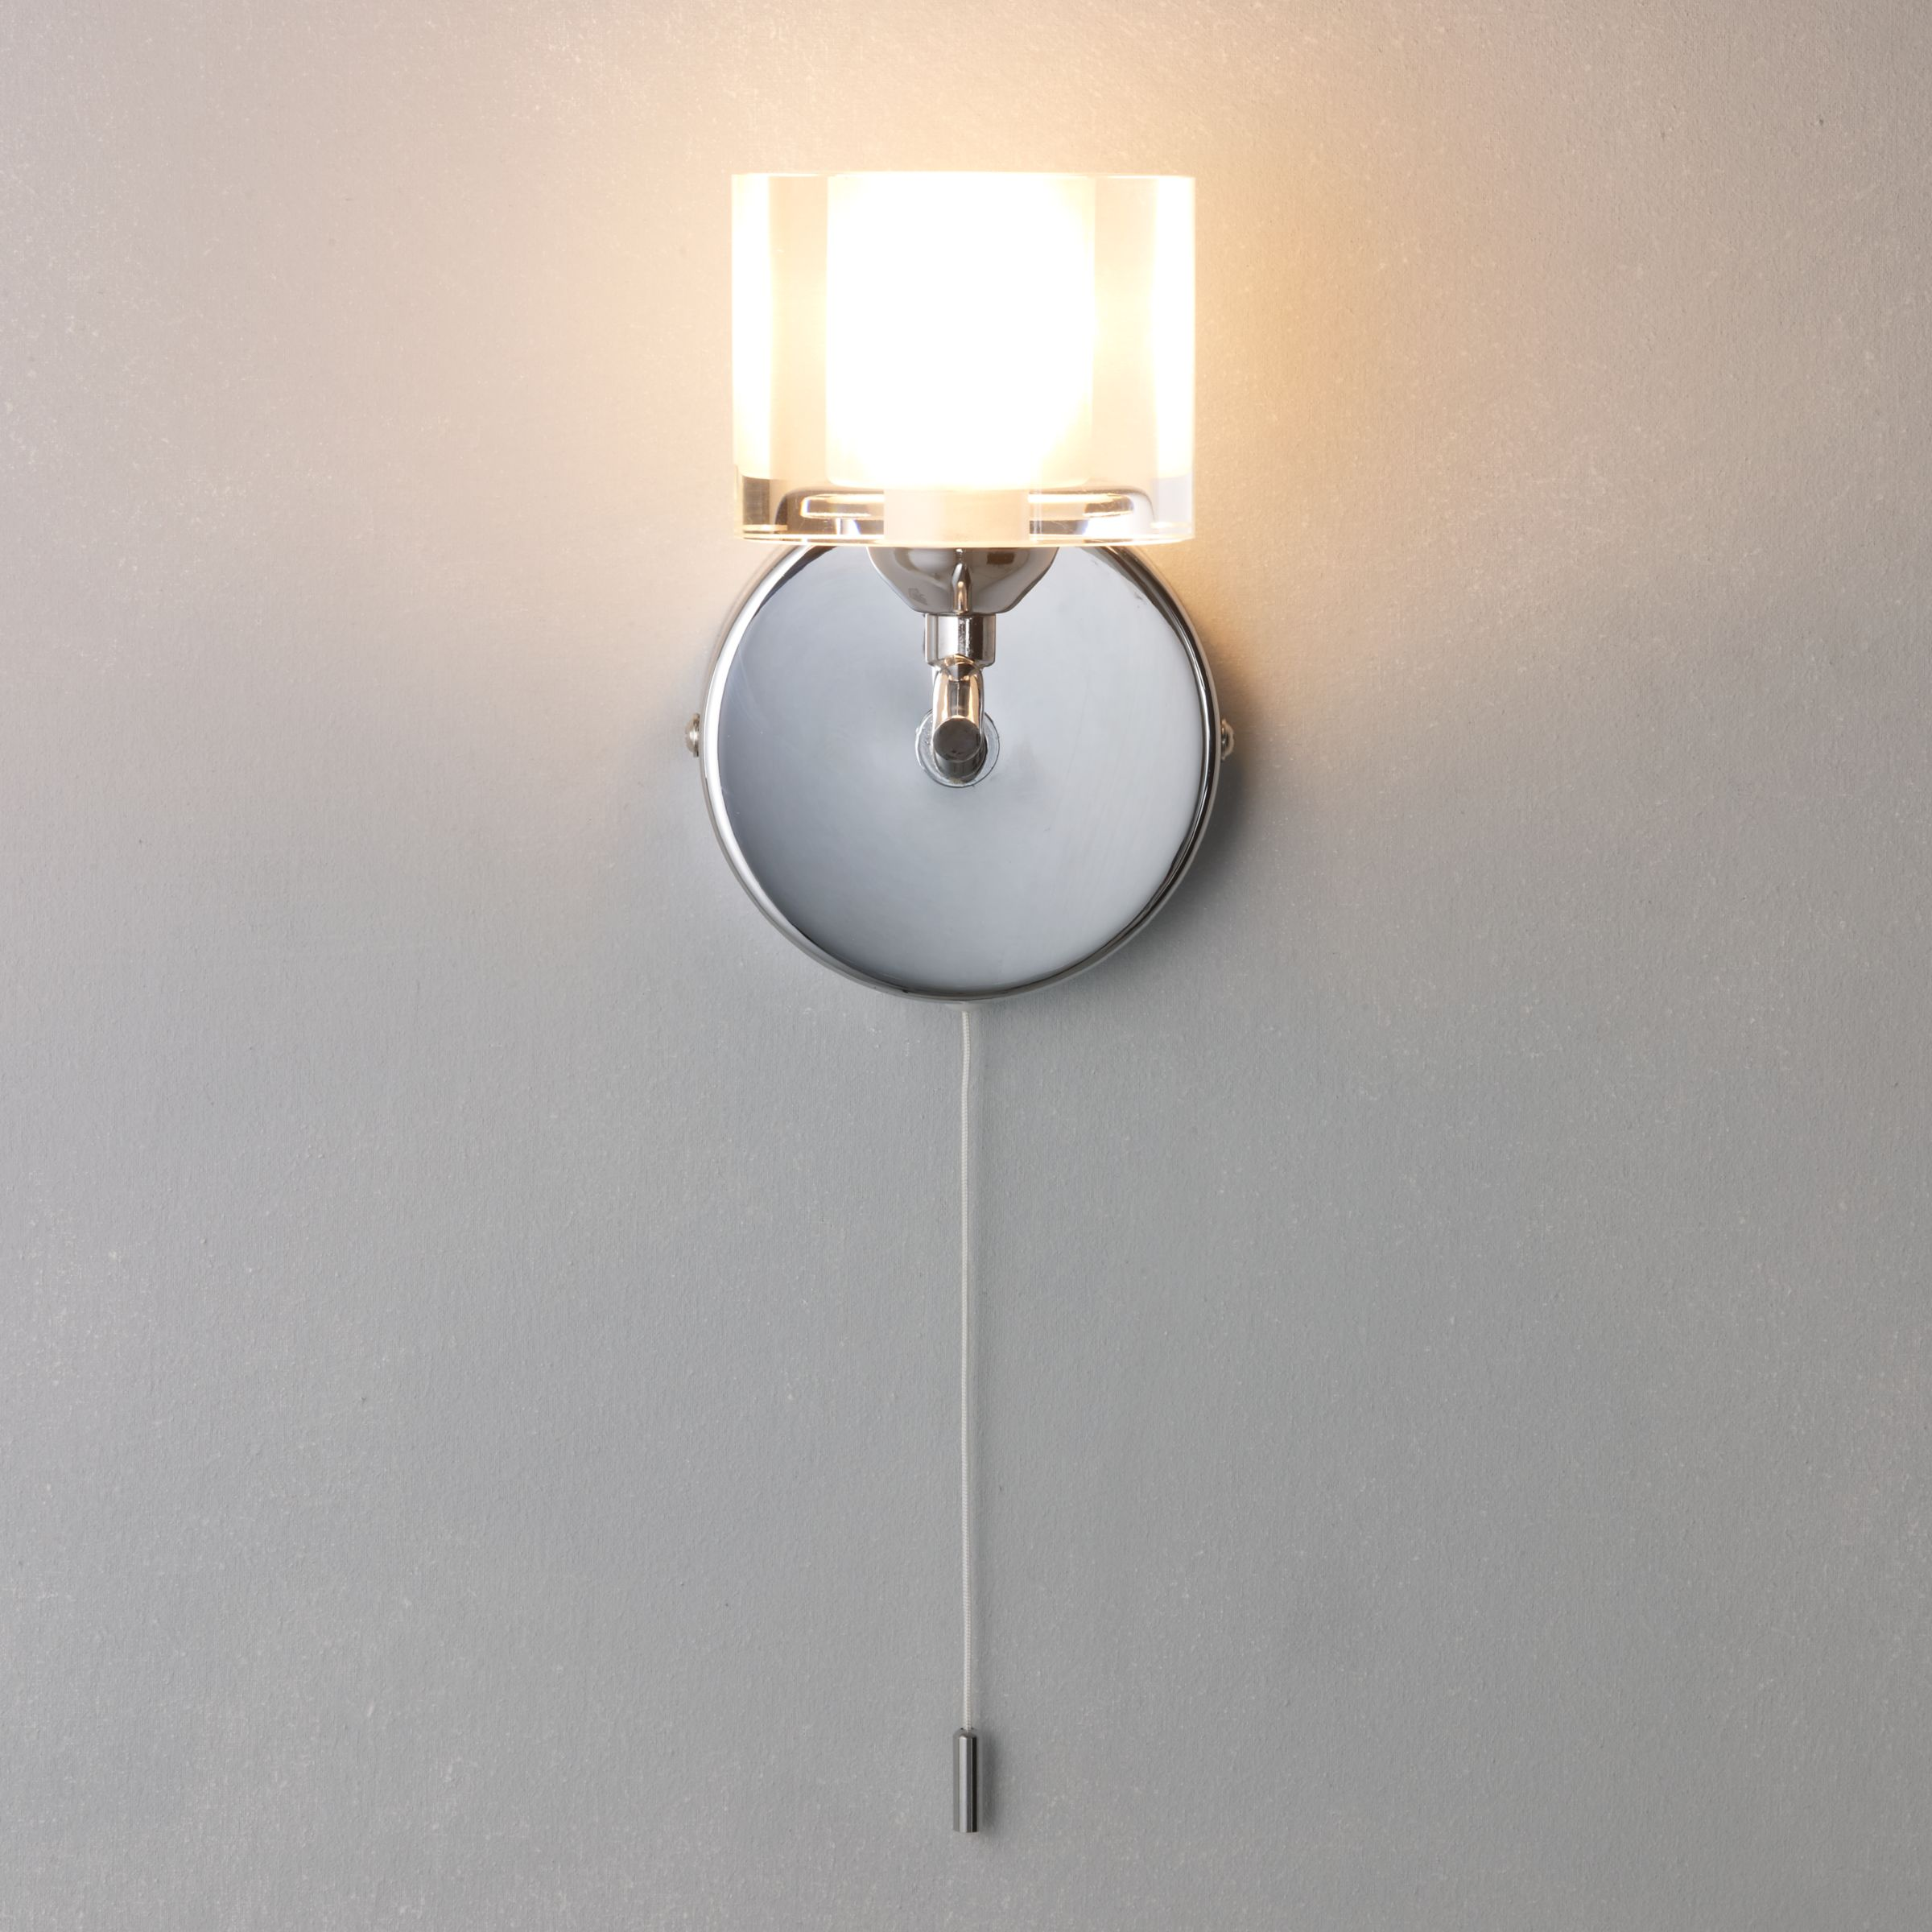 John Lewis Wall Lights Glass : Buy John Lewis Zola Single Wall Light John Lewis